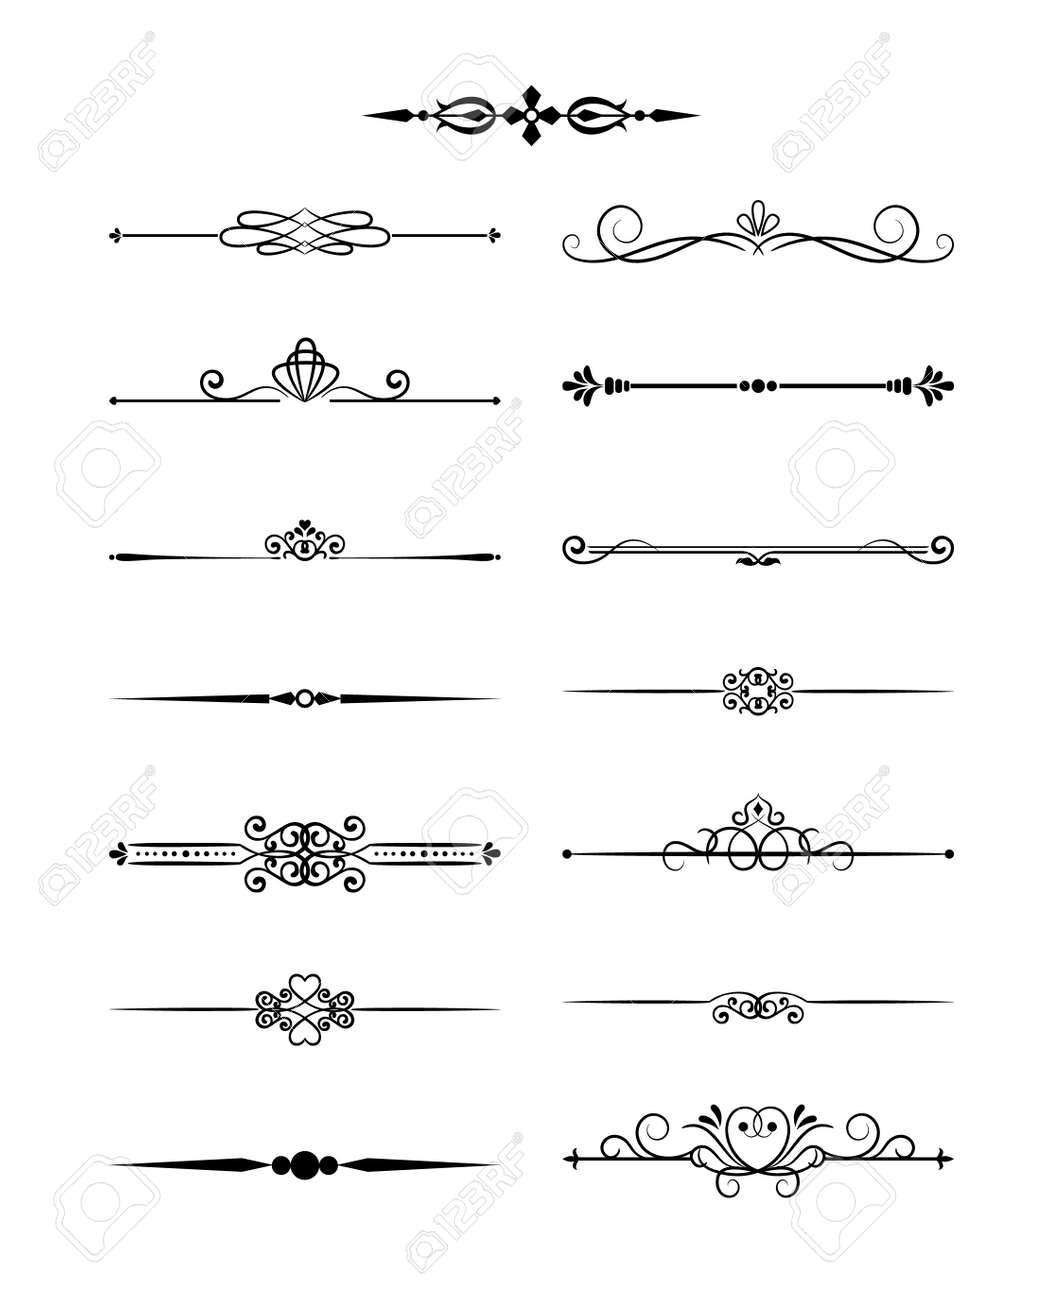 Floral design elements vintage dividers in black color. Page decoration. Vector illustration. Isolated on white background. Can use for birthday card, wedding invitations - 166769563